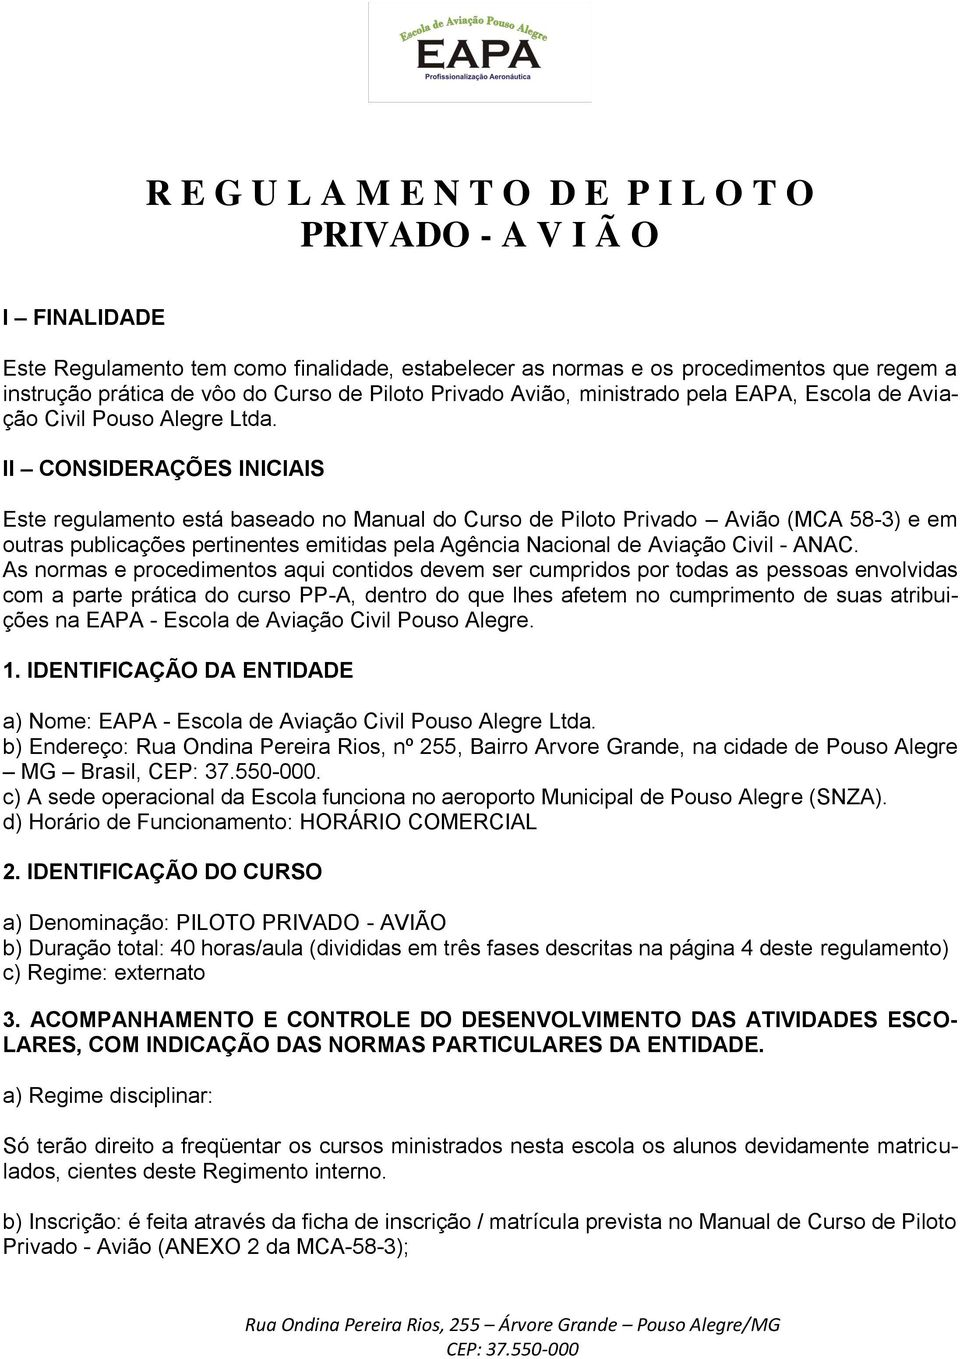 II CONSIDERAÇÕES INICIAIS Este regulamento está baseado no Manual do Curso de Piloto Privado Avião (MCA 58-3) e em outras publicações pertinentes emitidas pela Agência Nacional de Aviação Civil -